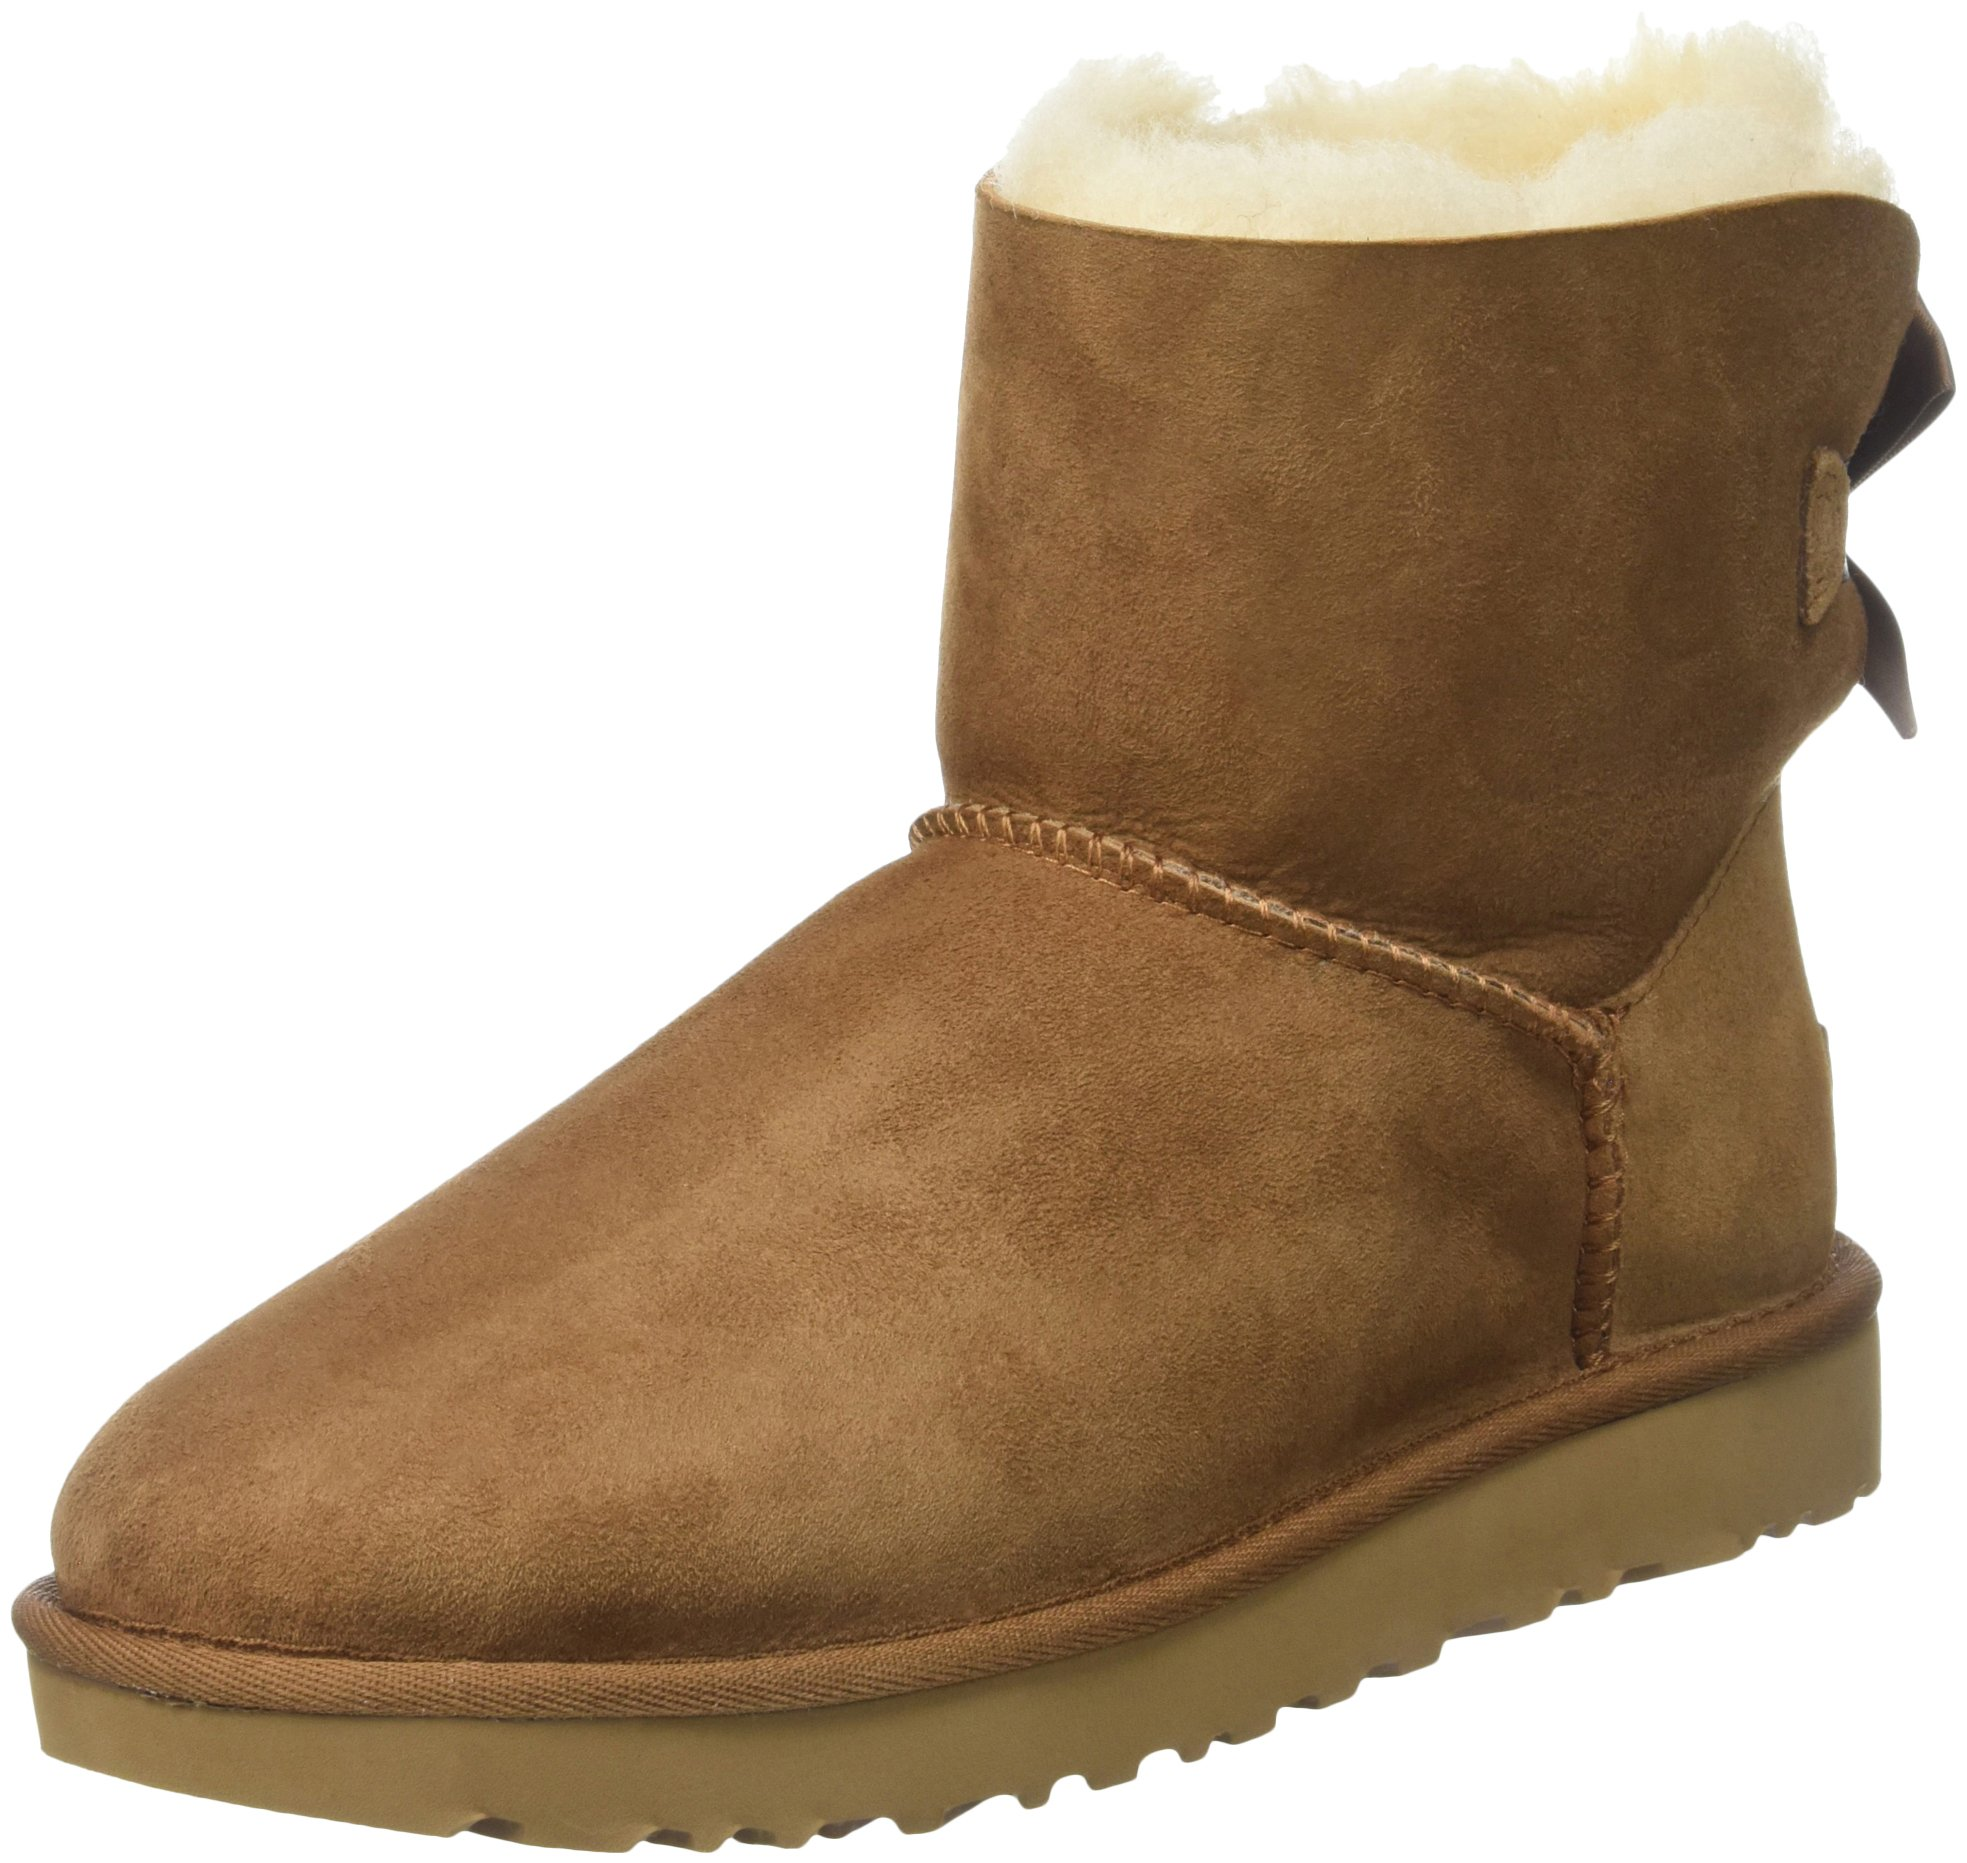 UGG Women's Mini Bailey Bow II Winter Boot, Chestnut, 11 US/11 B US